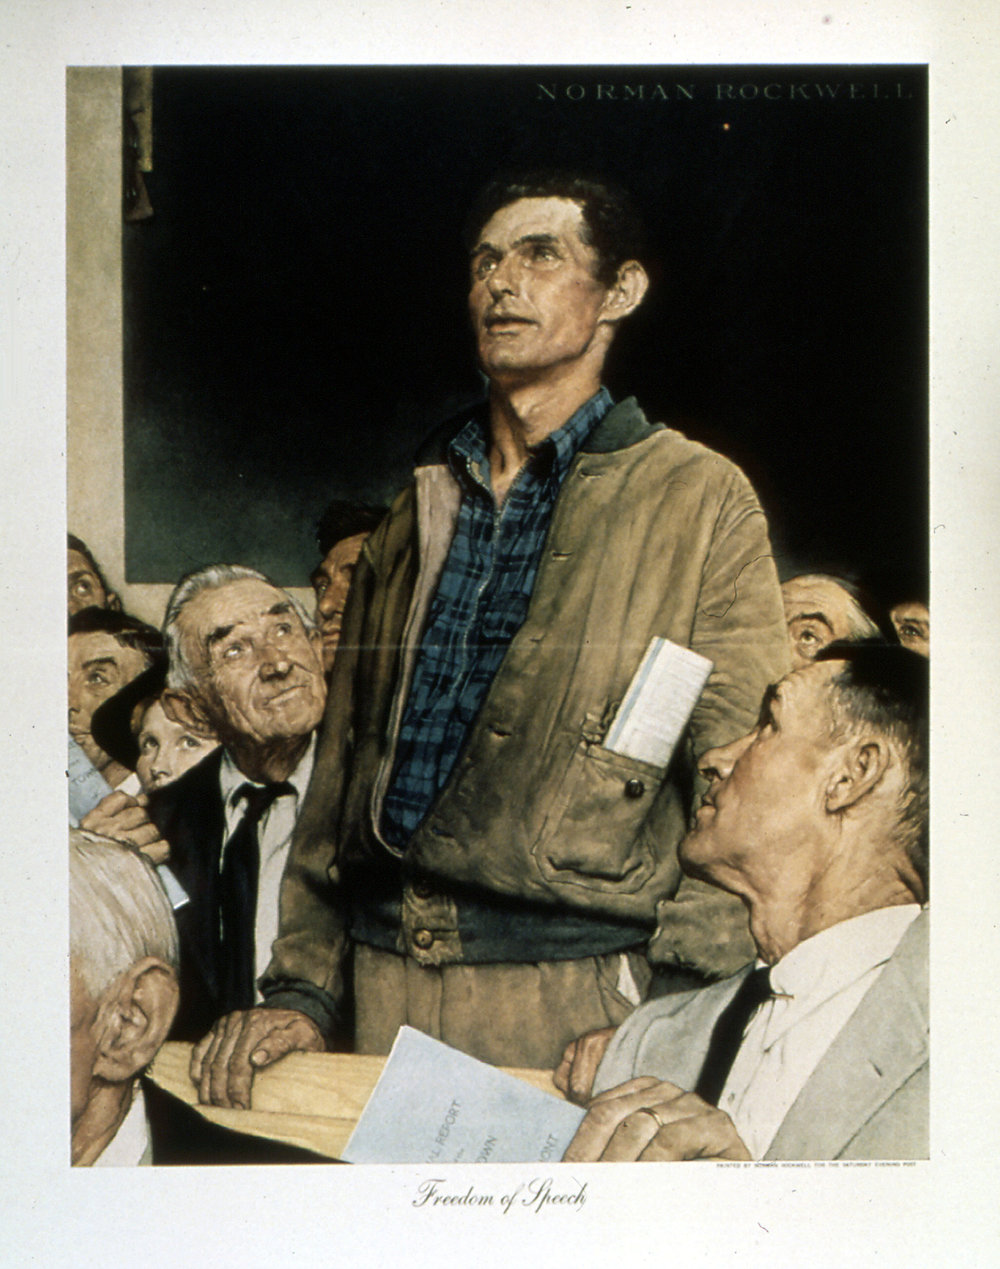 Norman Rockwell, Freedom of Speech, 1943